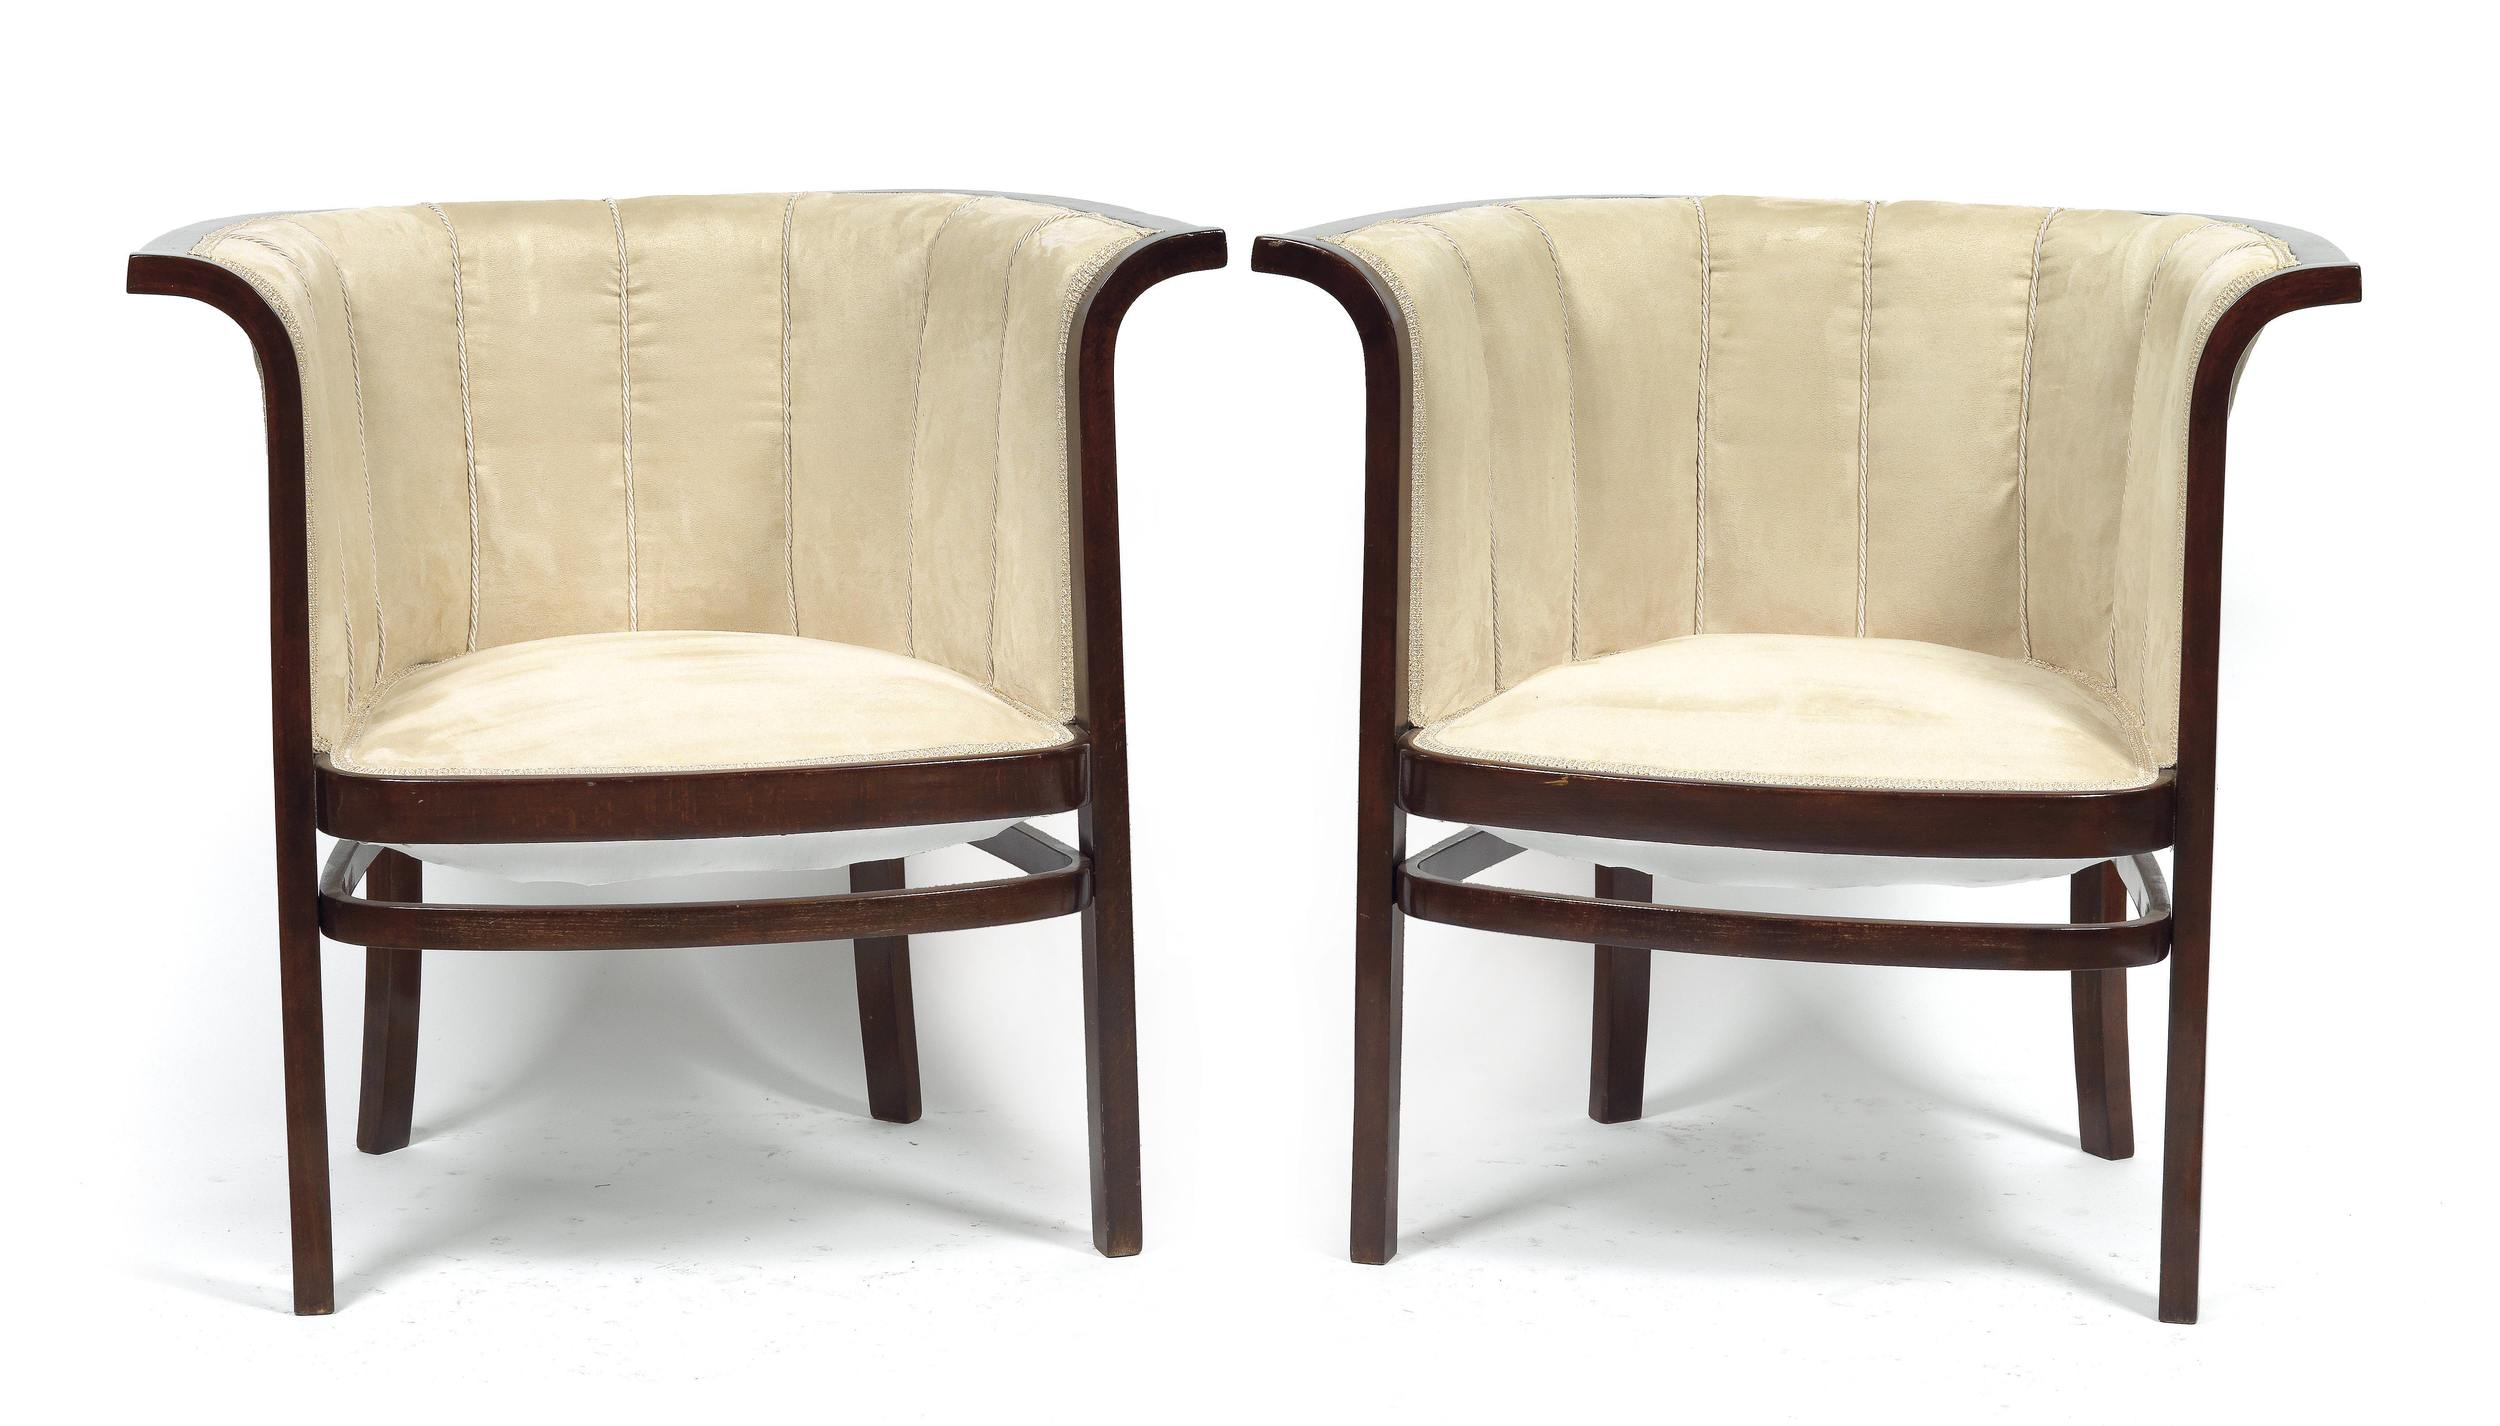 Marcel Kammerer (1878-1959) Pair of Chairs from Drawing Room Suite, c. 1910 Dorotheum Vienna